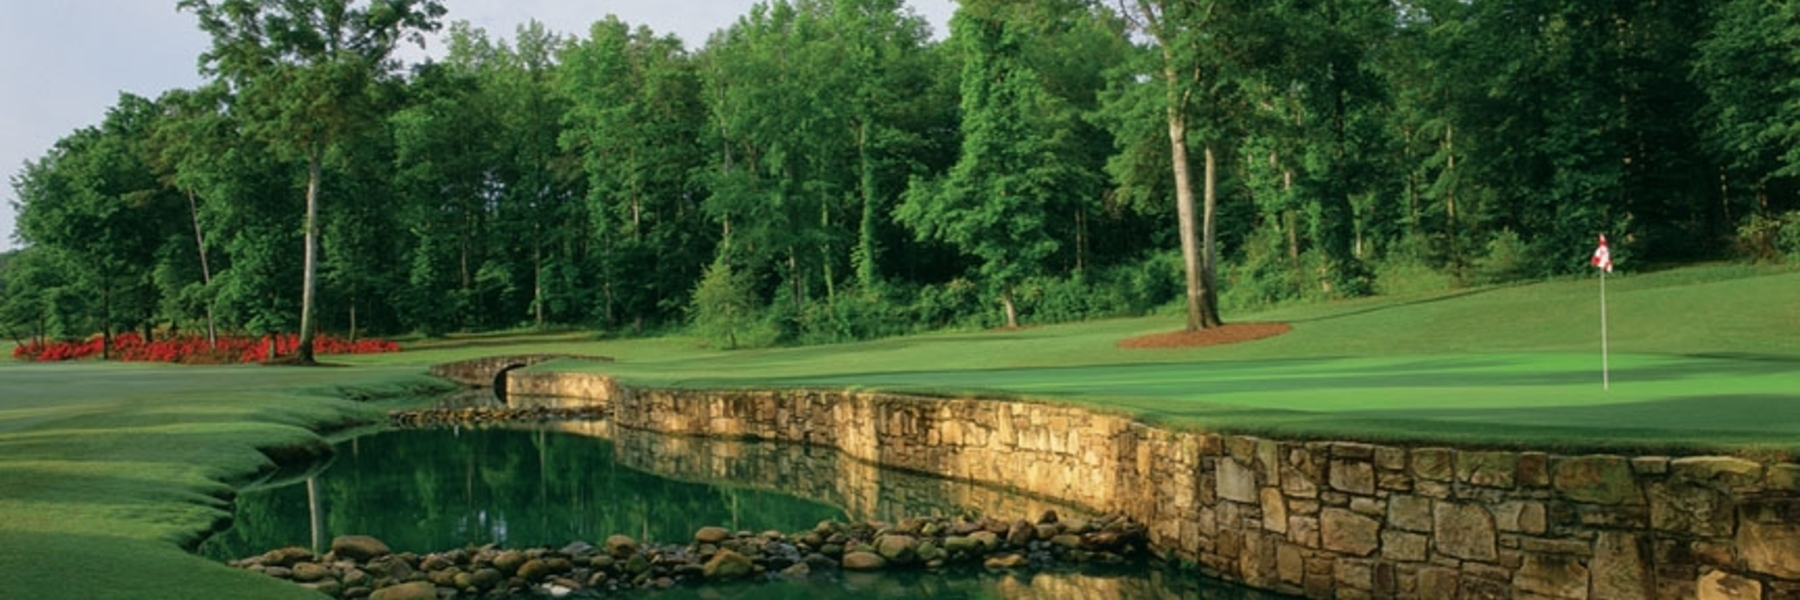 Golf Vacation Package - Spring Golf Deal on Reynolds Stay and Play!